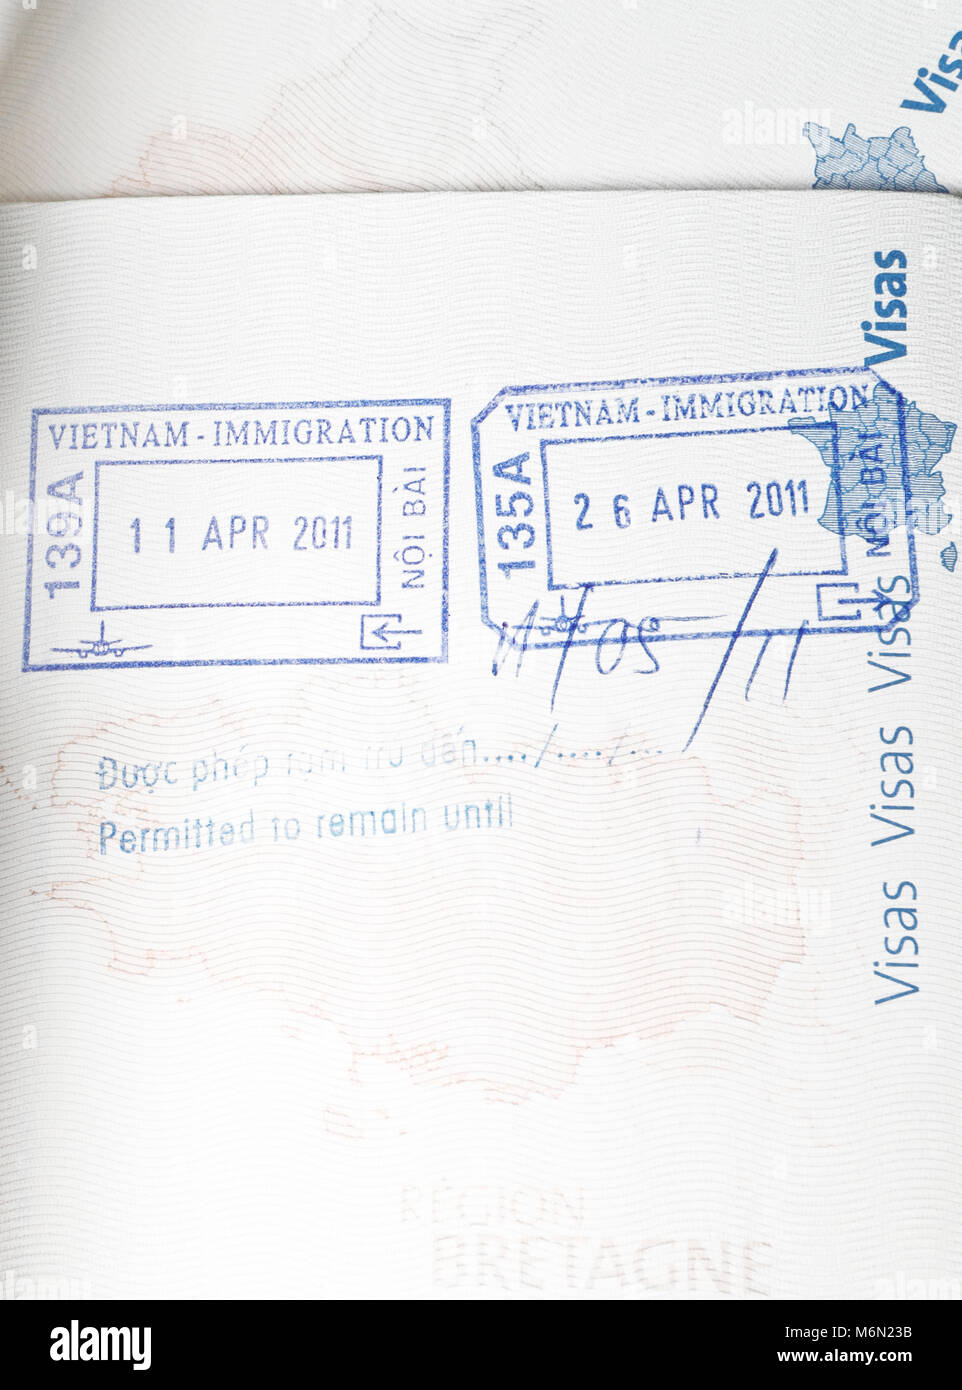 Inside cover of a French Passport with visa stamps - Stock Image